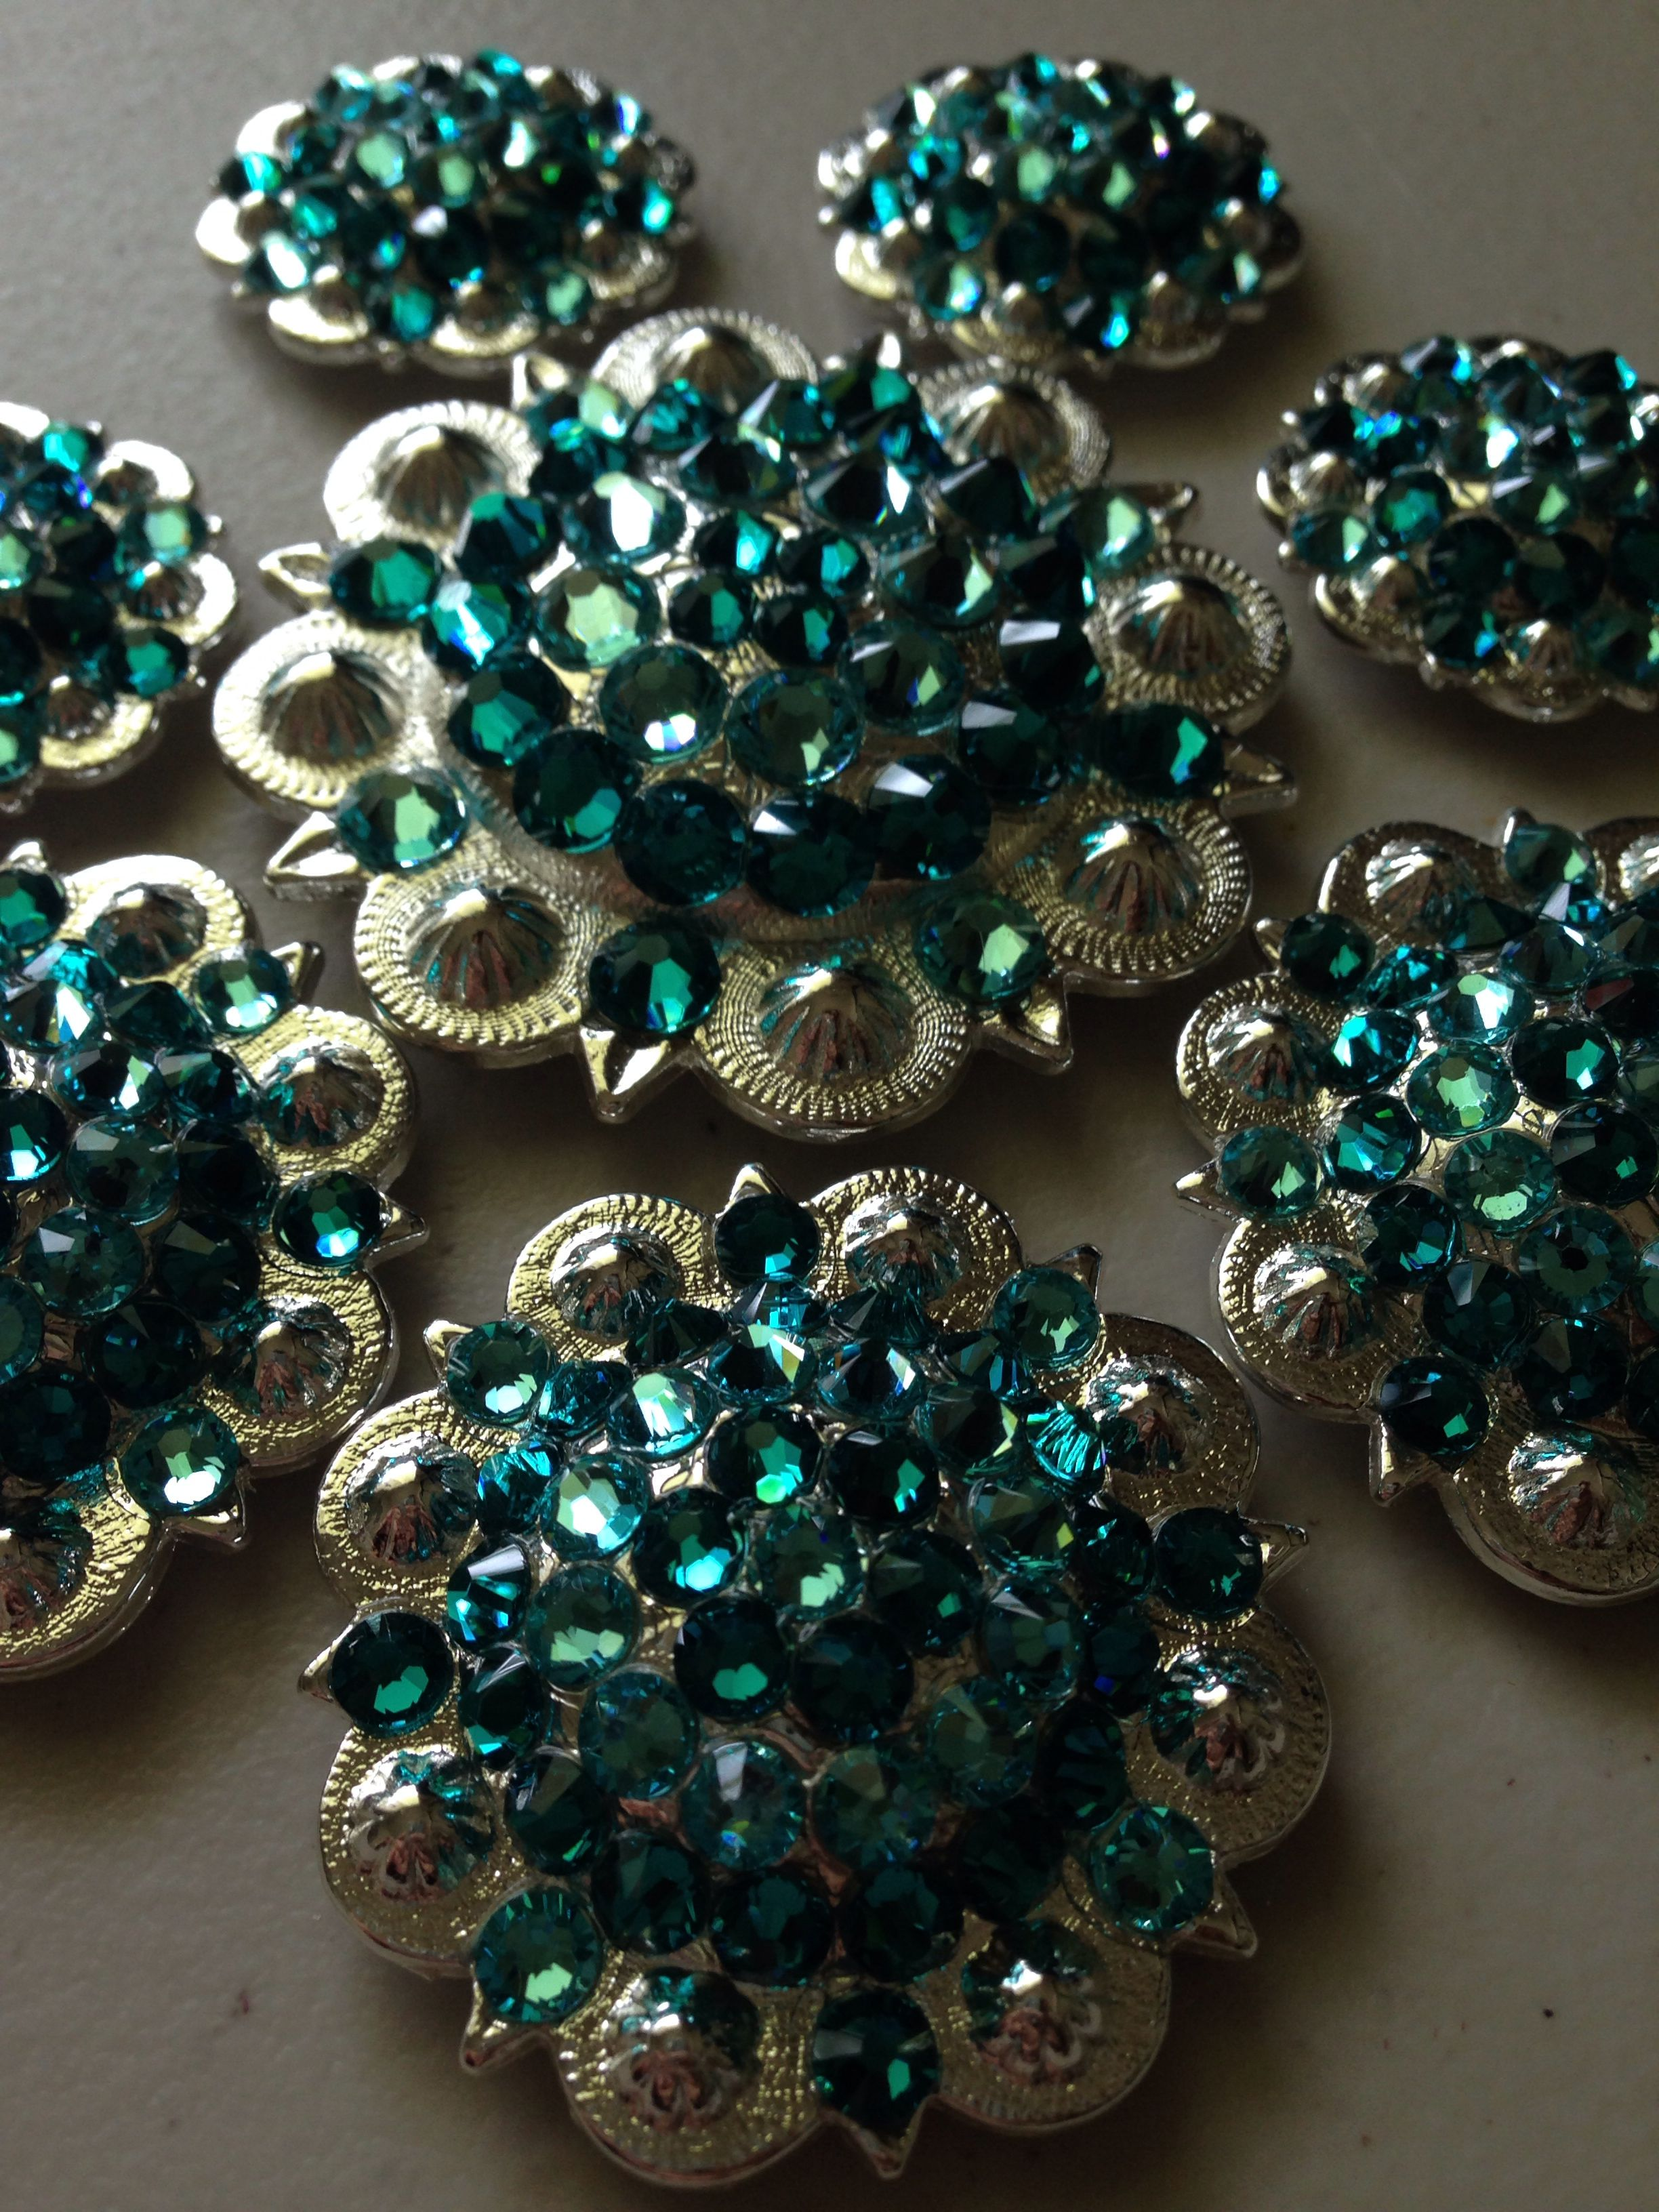 Jens Custom Bling Horse Tack Conchos. Follow